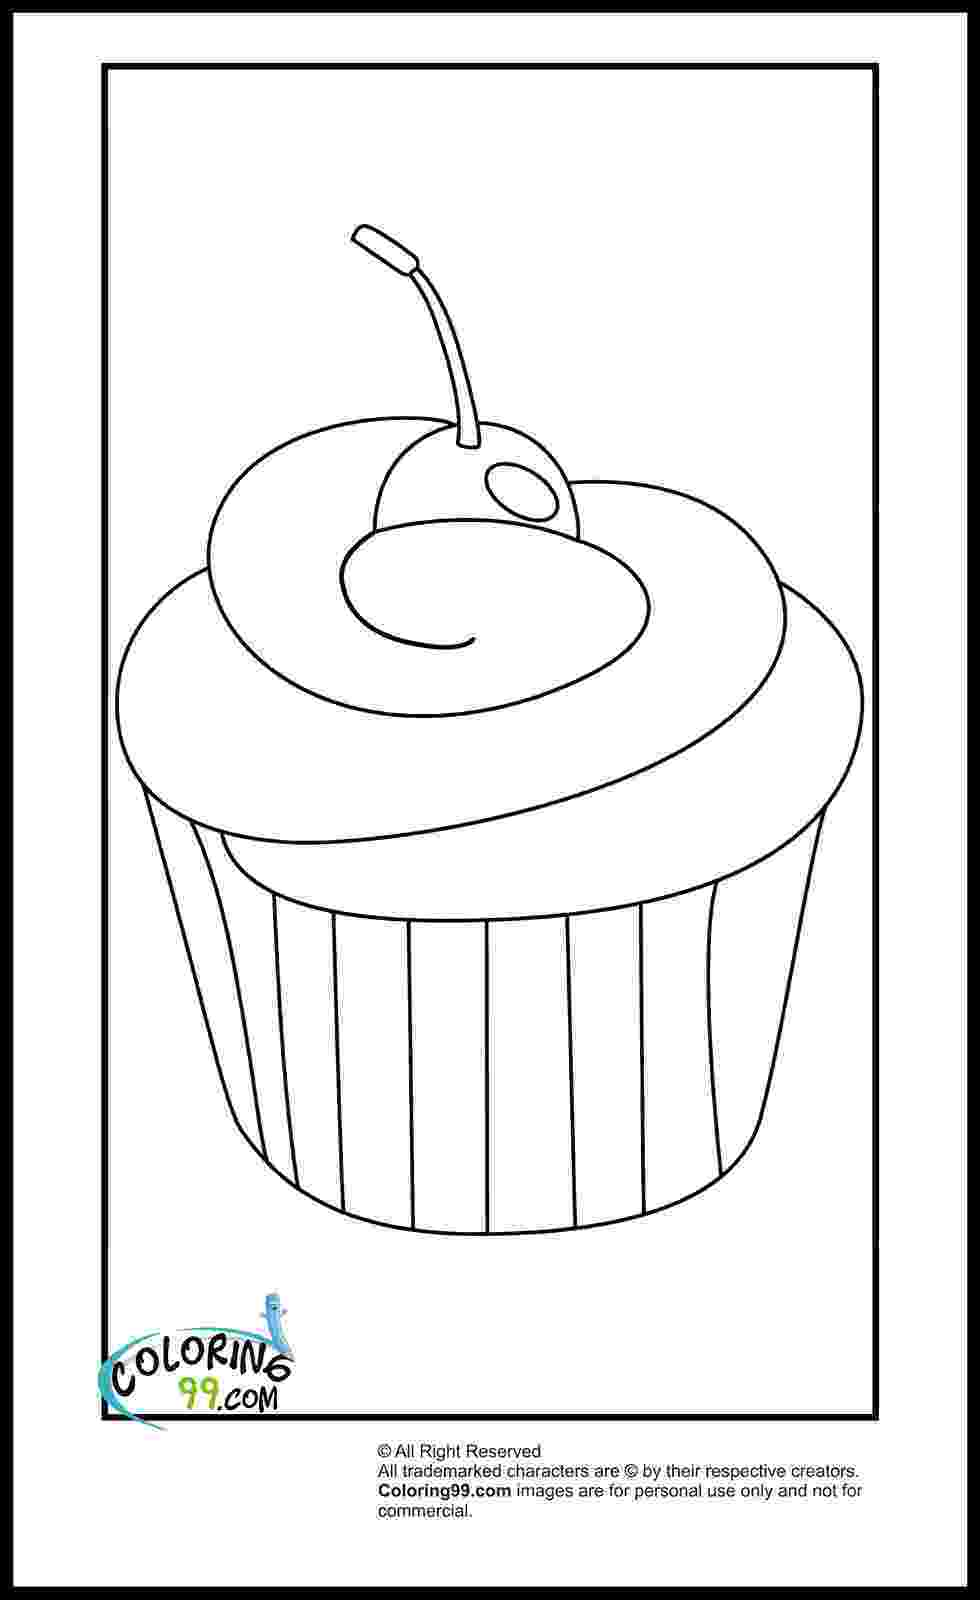 colouring pages cupcakes cupcake coloring pages minister coloring colouring cupcakes pages